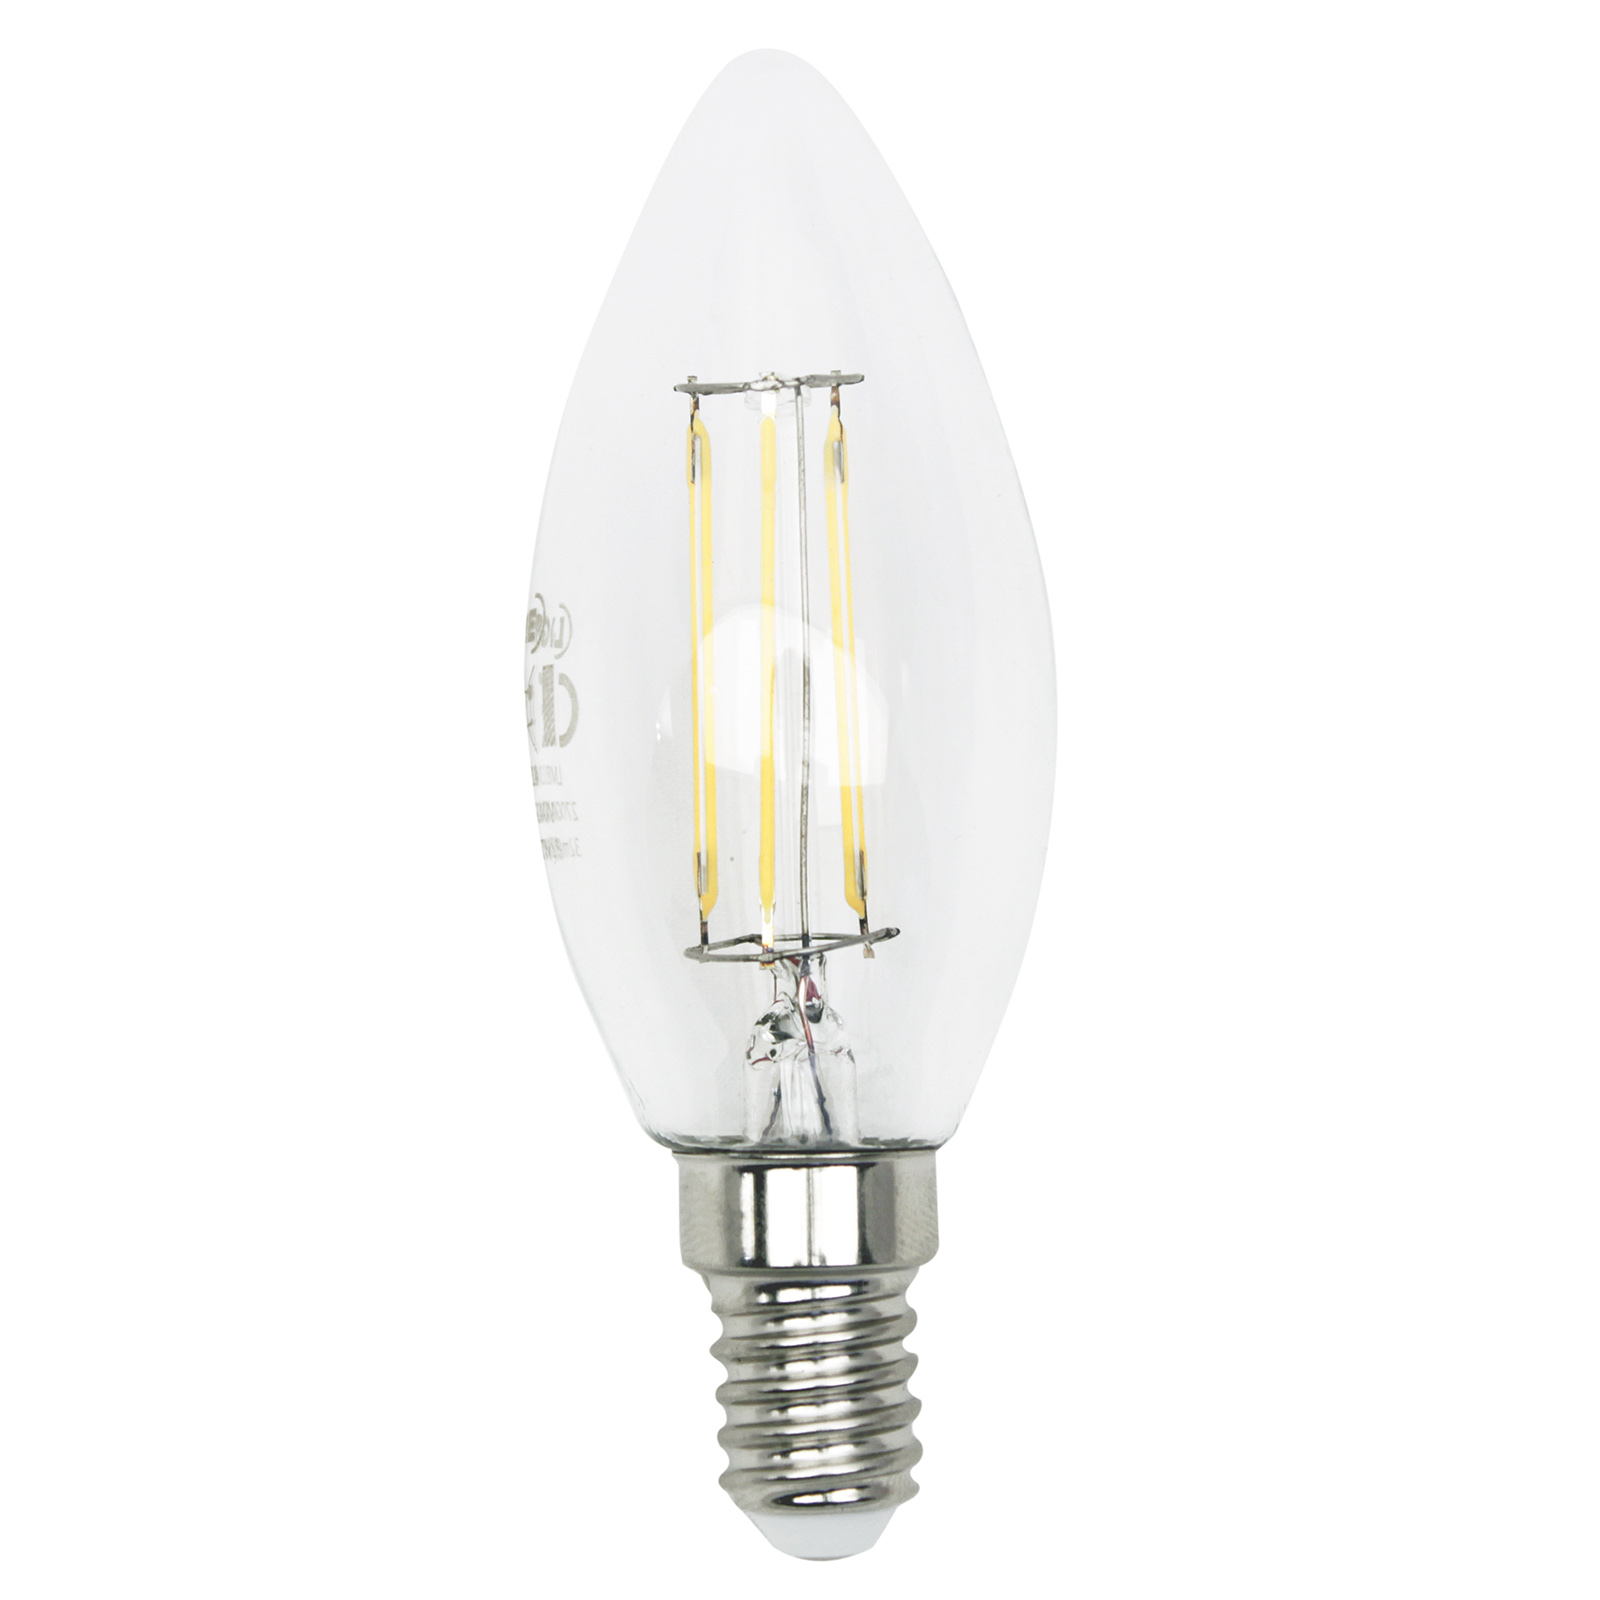 LED-Kerzenlampe Filament - E14 - 4 Watt - warmweiß